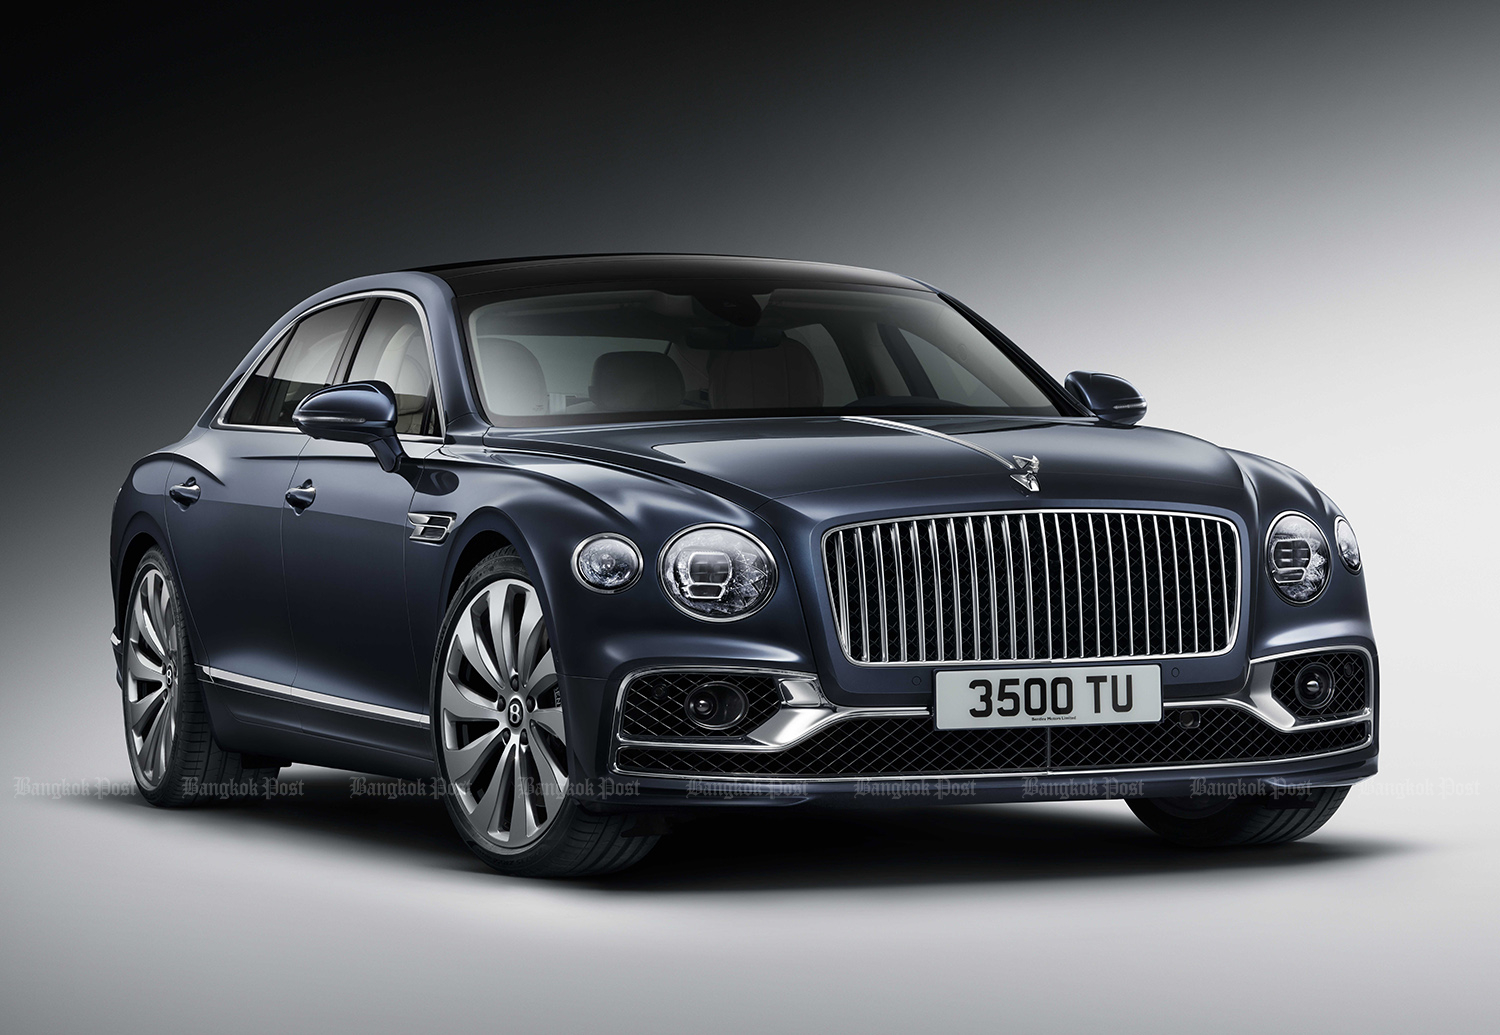 New Bentley Flying Spur revealed for 2020